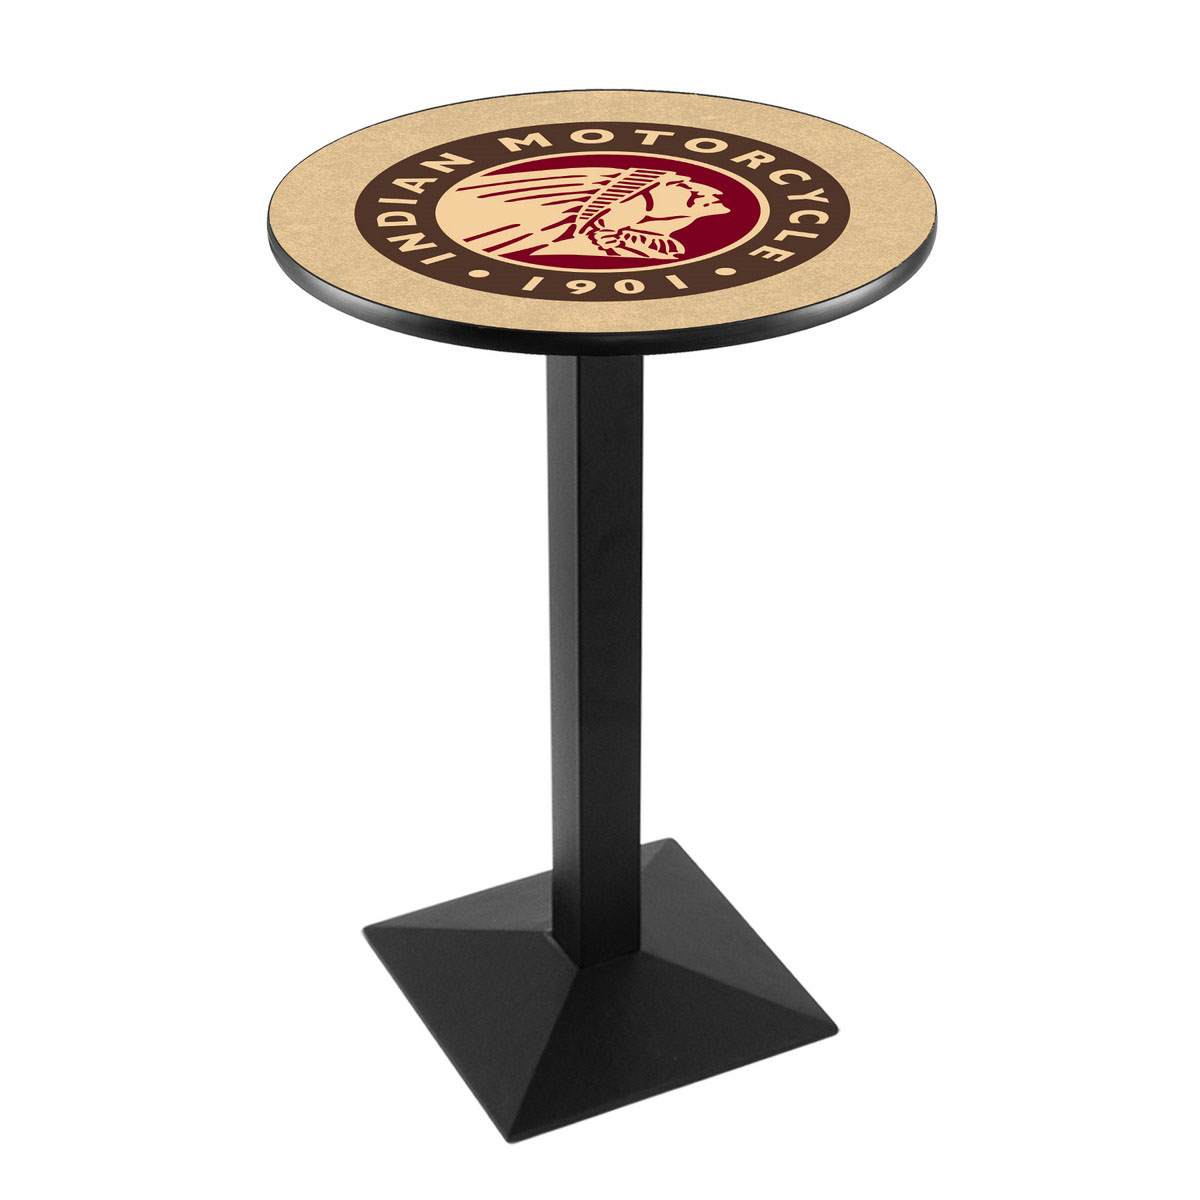 Outstanding Indian Motorcycle Logo Pub Bar Table Square Stand 16 1135